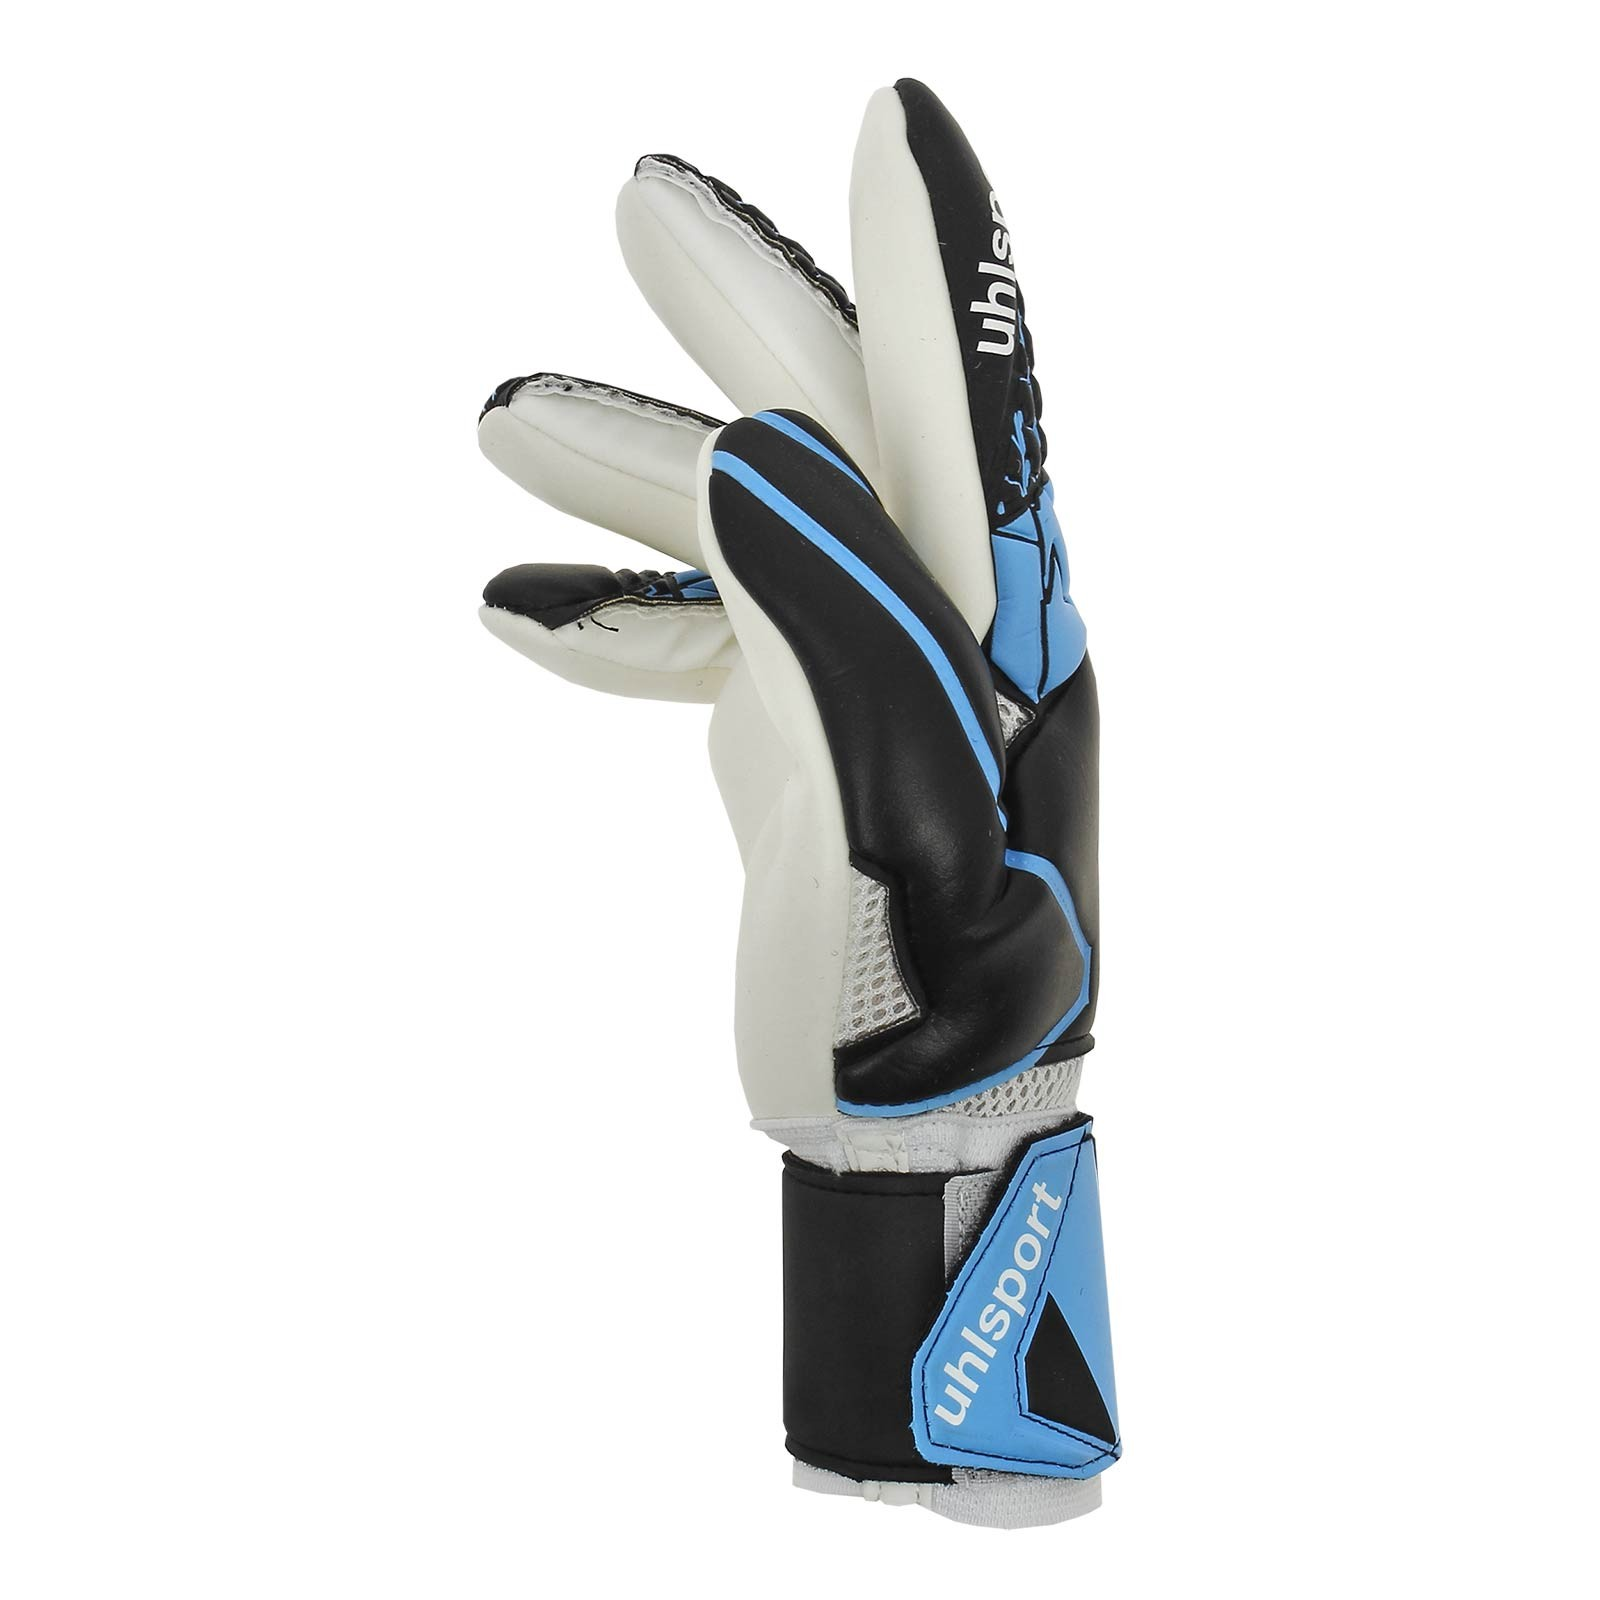 Uhlsport-SOFT-HN-Competition-Gant-de-Gardien-Keeper-Gloves-Bleu-noir miniature 4